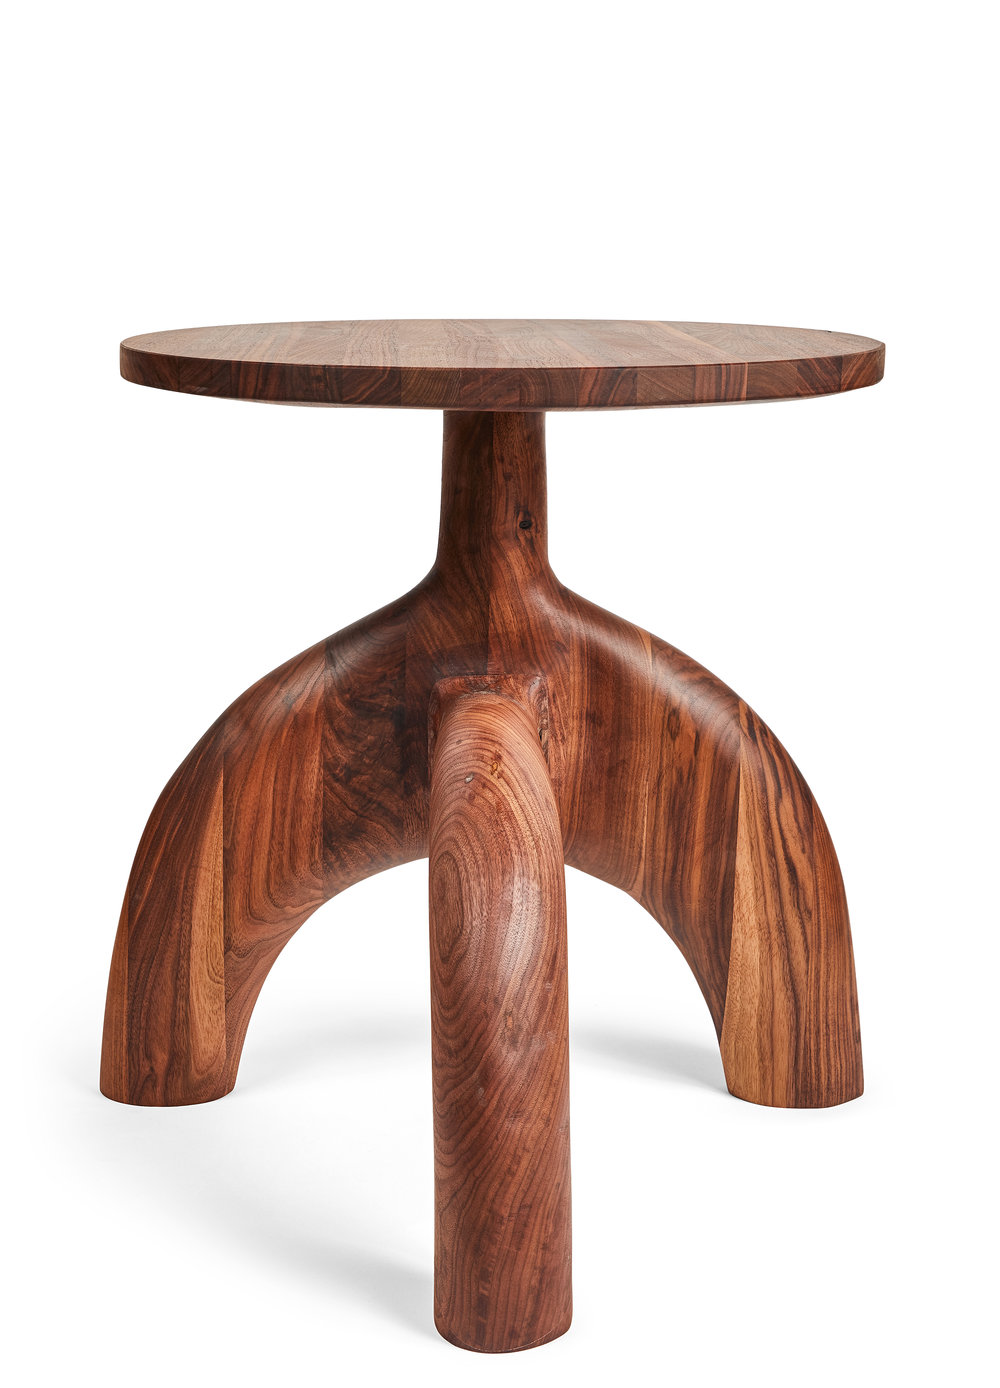 SCULPTURE 001 WALNUT SIDE TABLE (3).jpg